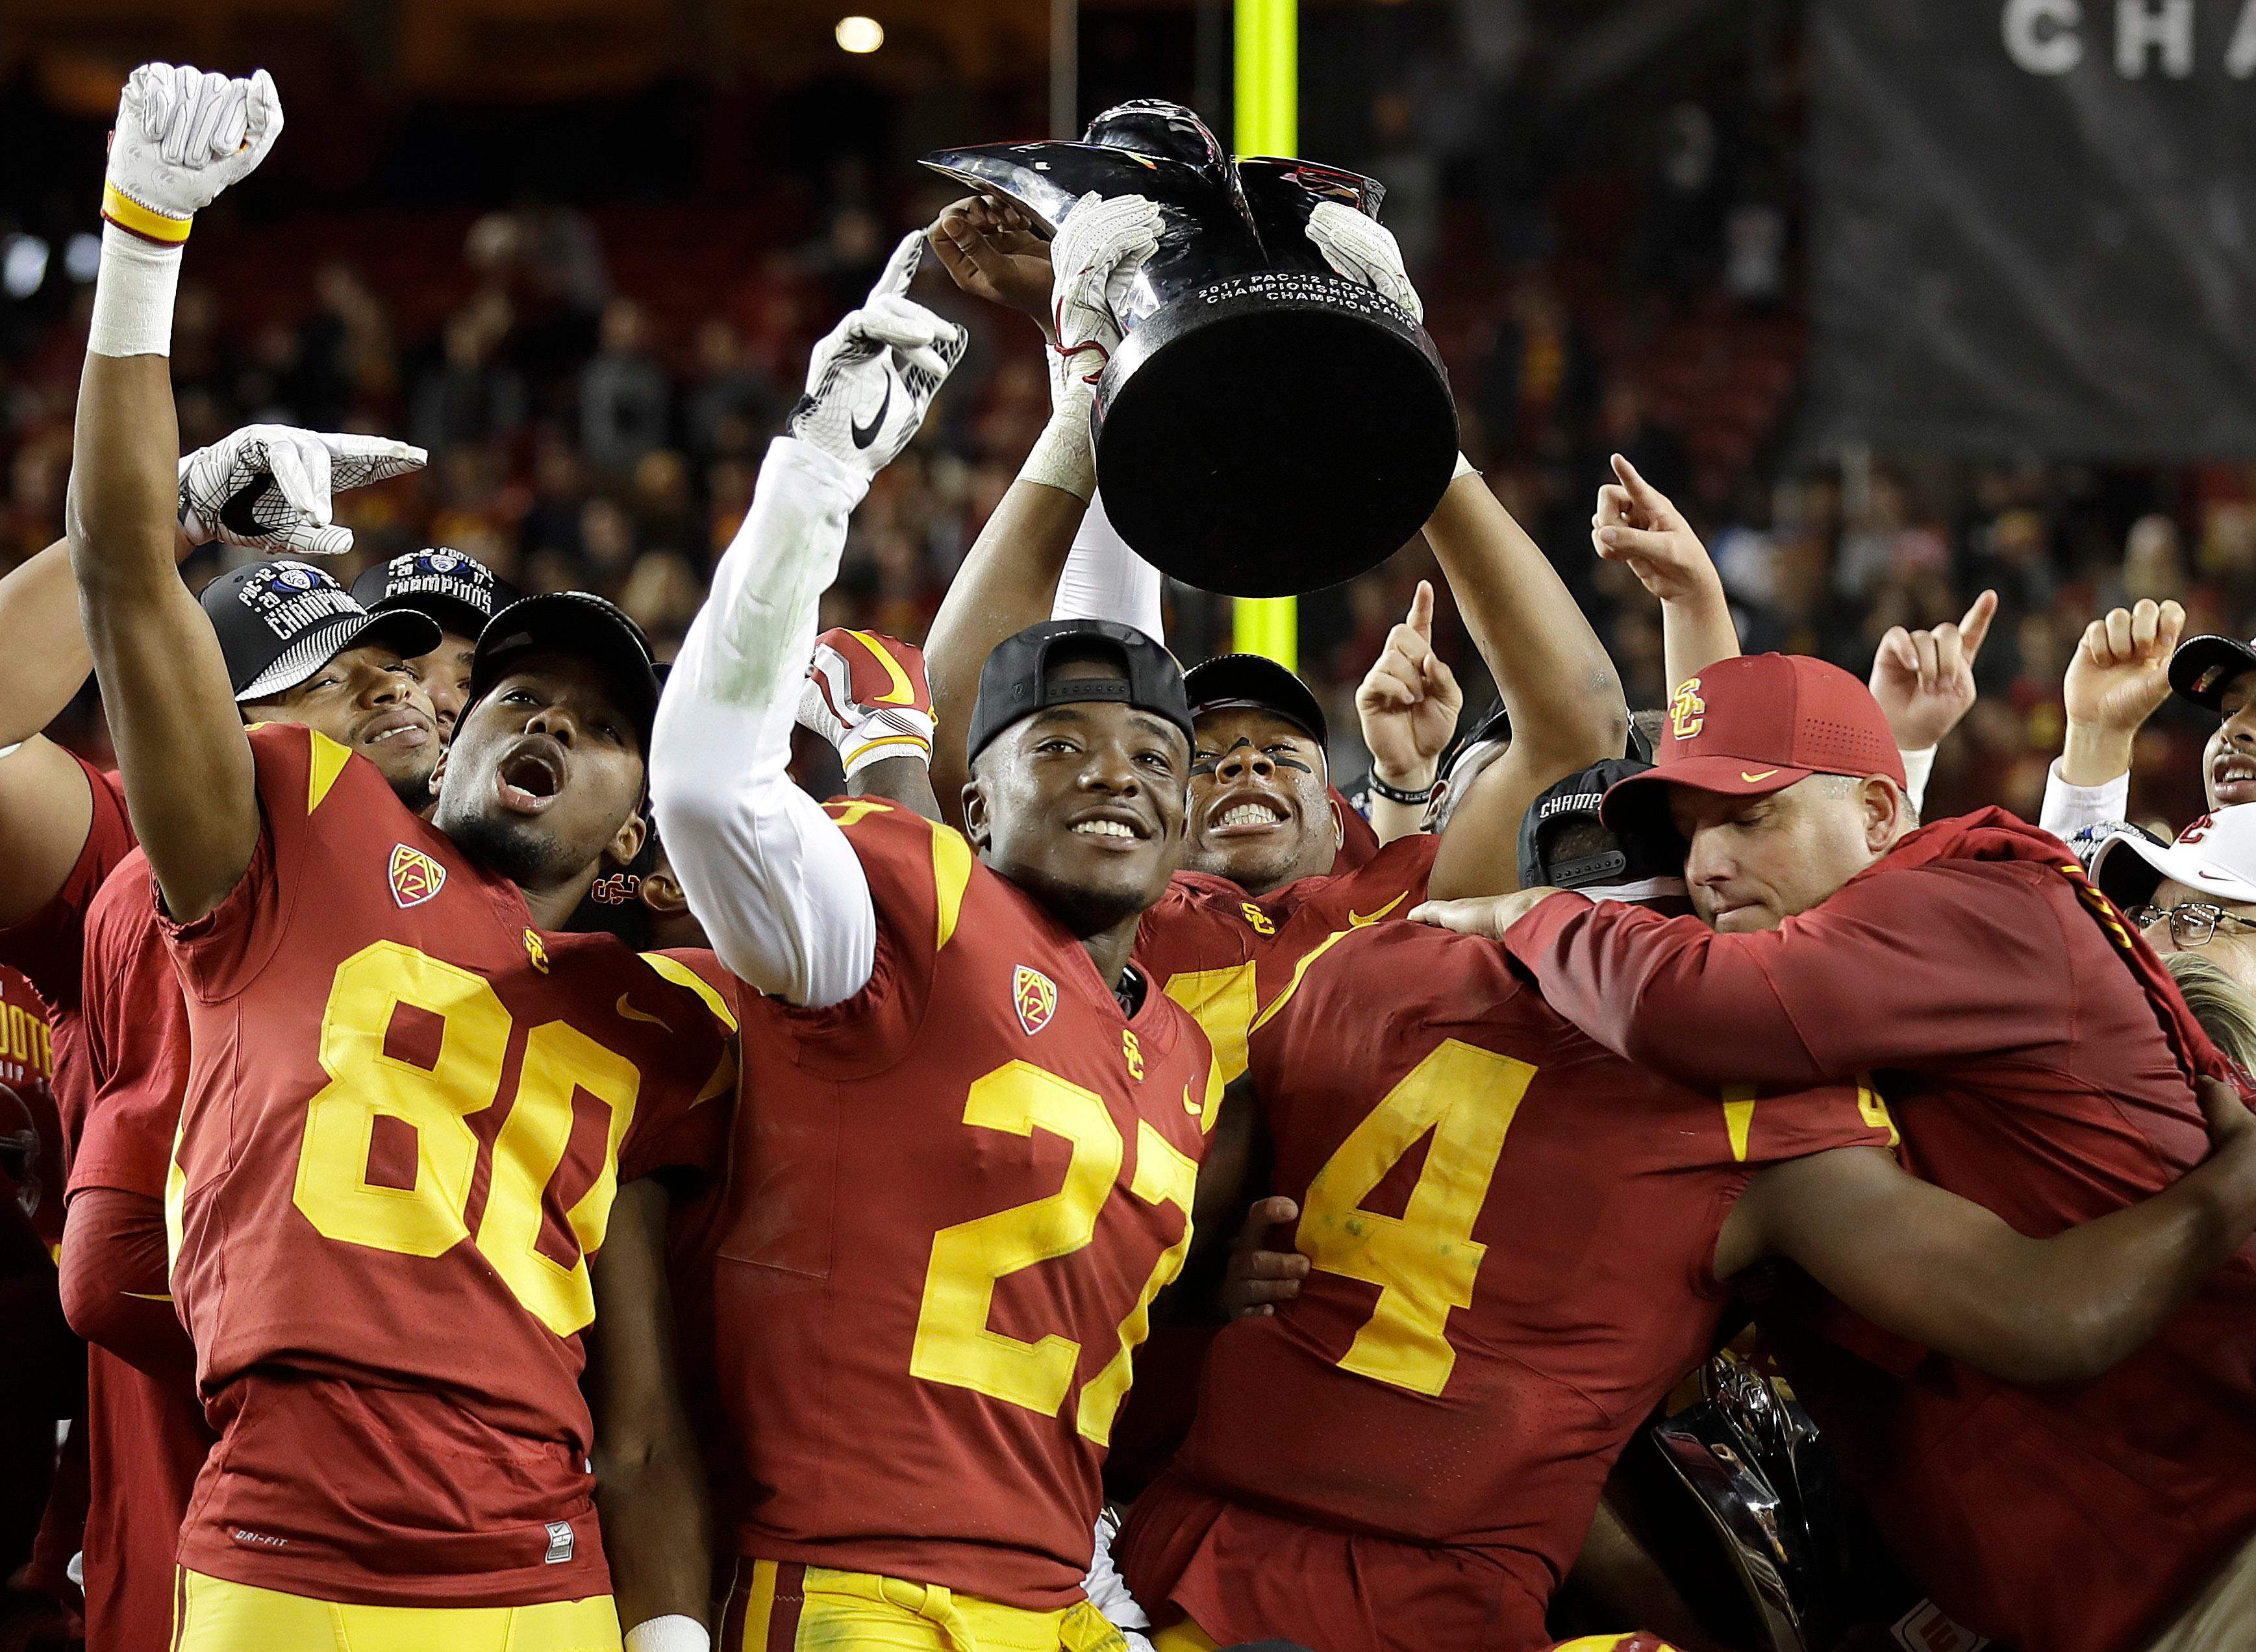 Southern California coach Clay Helton, right, celebrates with players after a 31-28 win over Stanford in the Pac-12 Conference championship NCAA college football game in Santa Clara, Calif., Friday, Dec. 1, 2017. (AP Photo/Marcio Jose Sanchez)